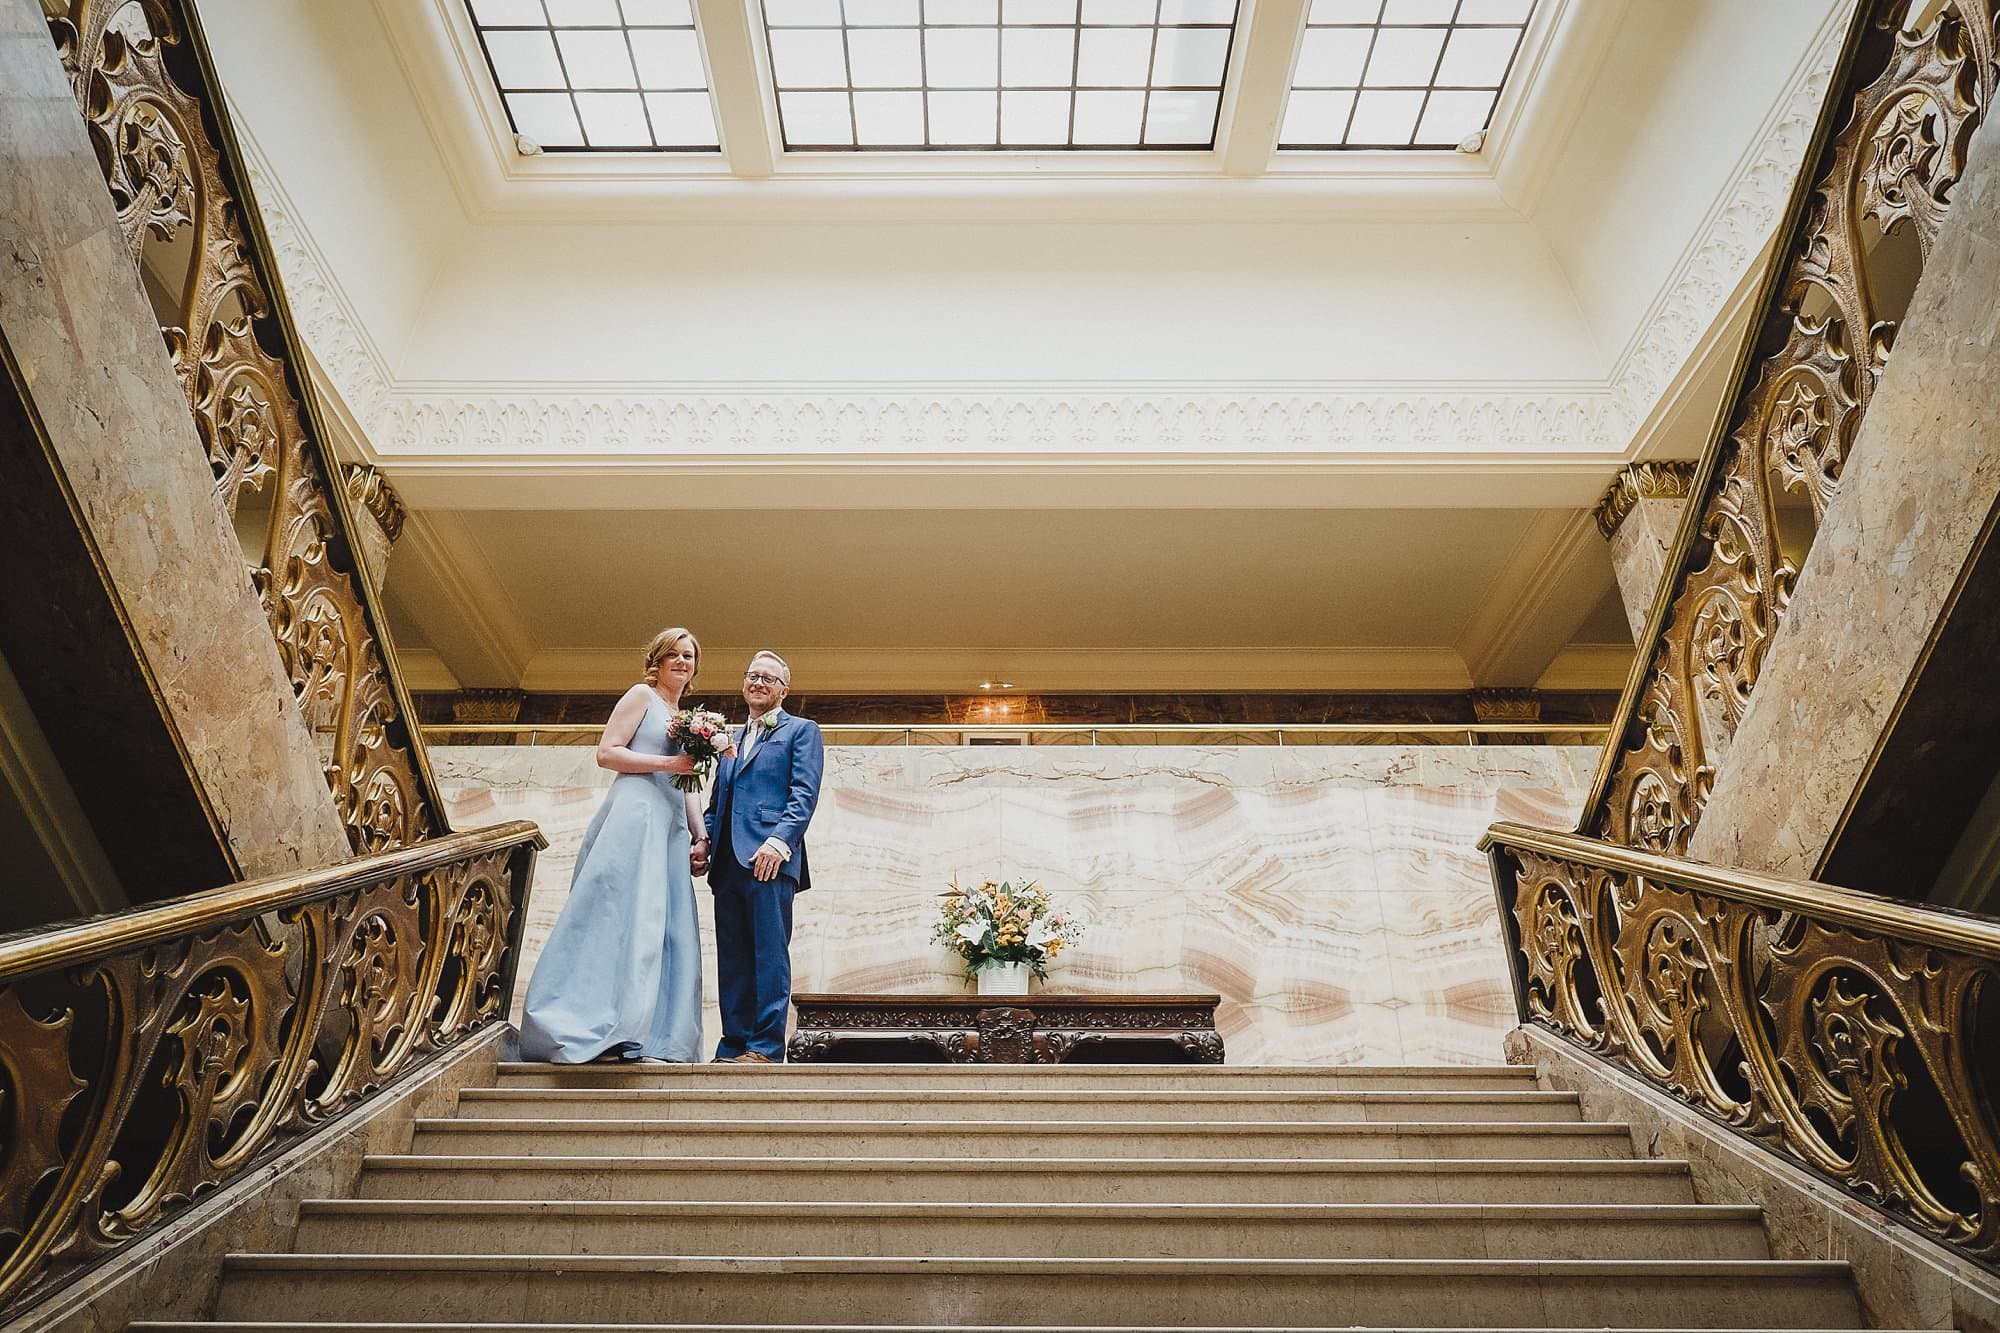 Wandsworth Town Hall Wedding Photographer  U2022 Owen Billcliffe Photography